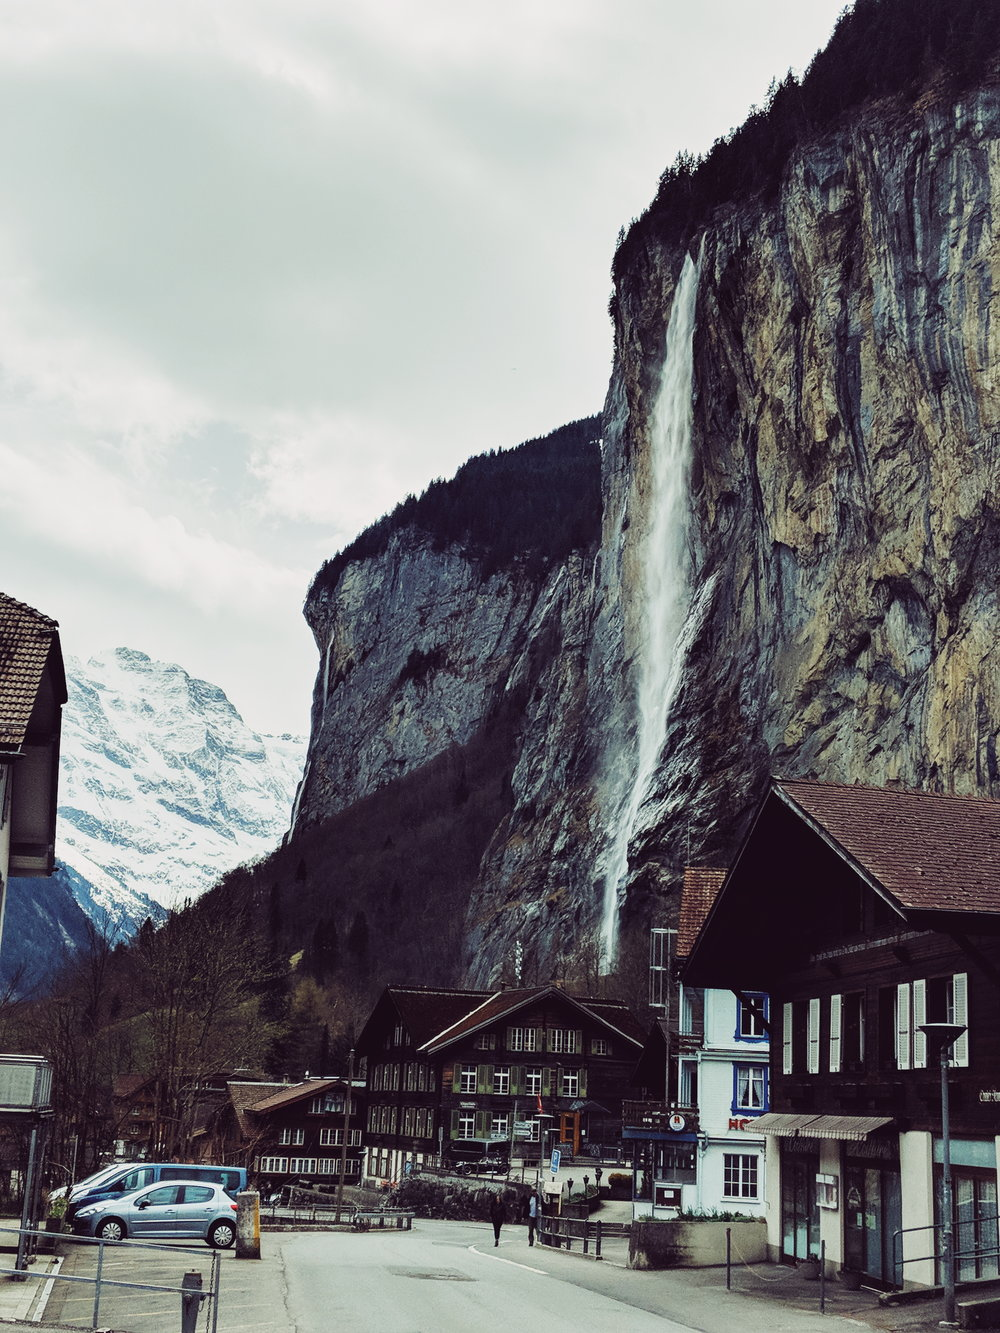 Look at that waterfall!